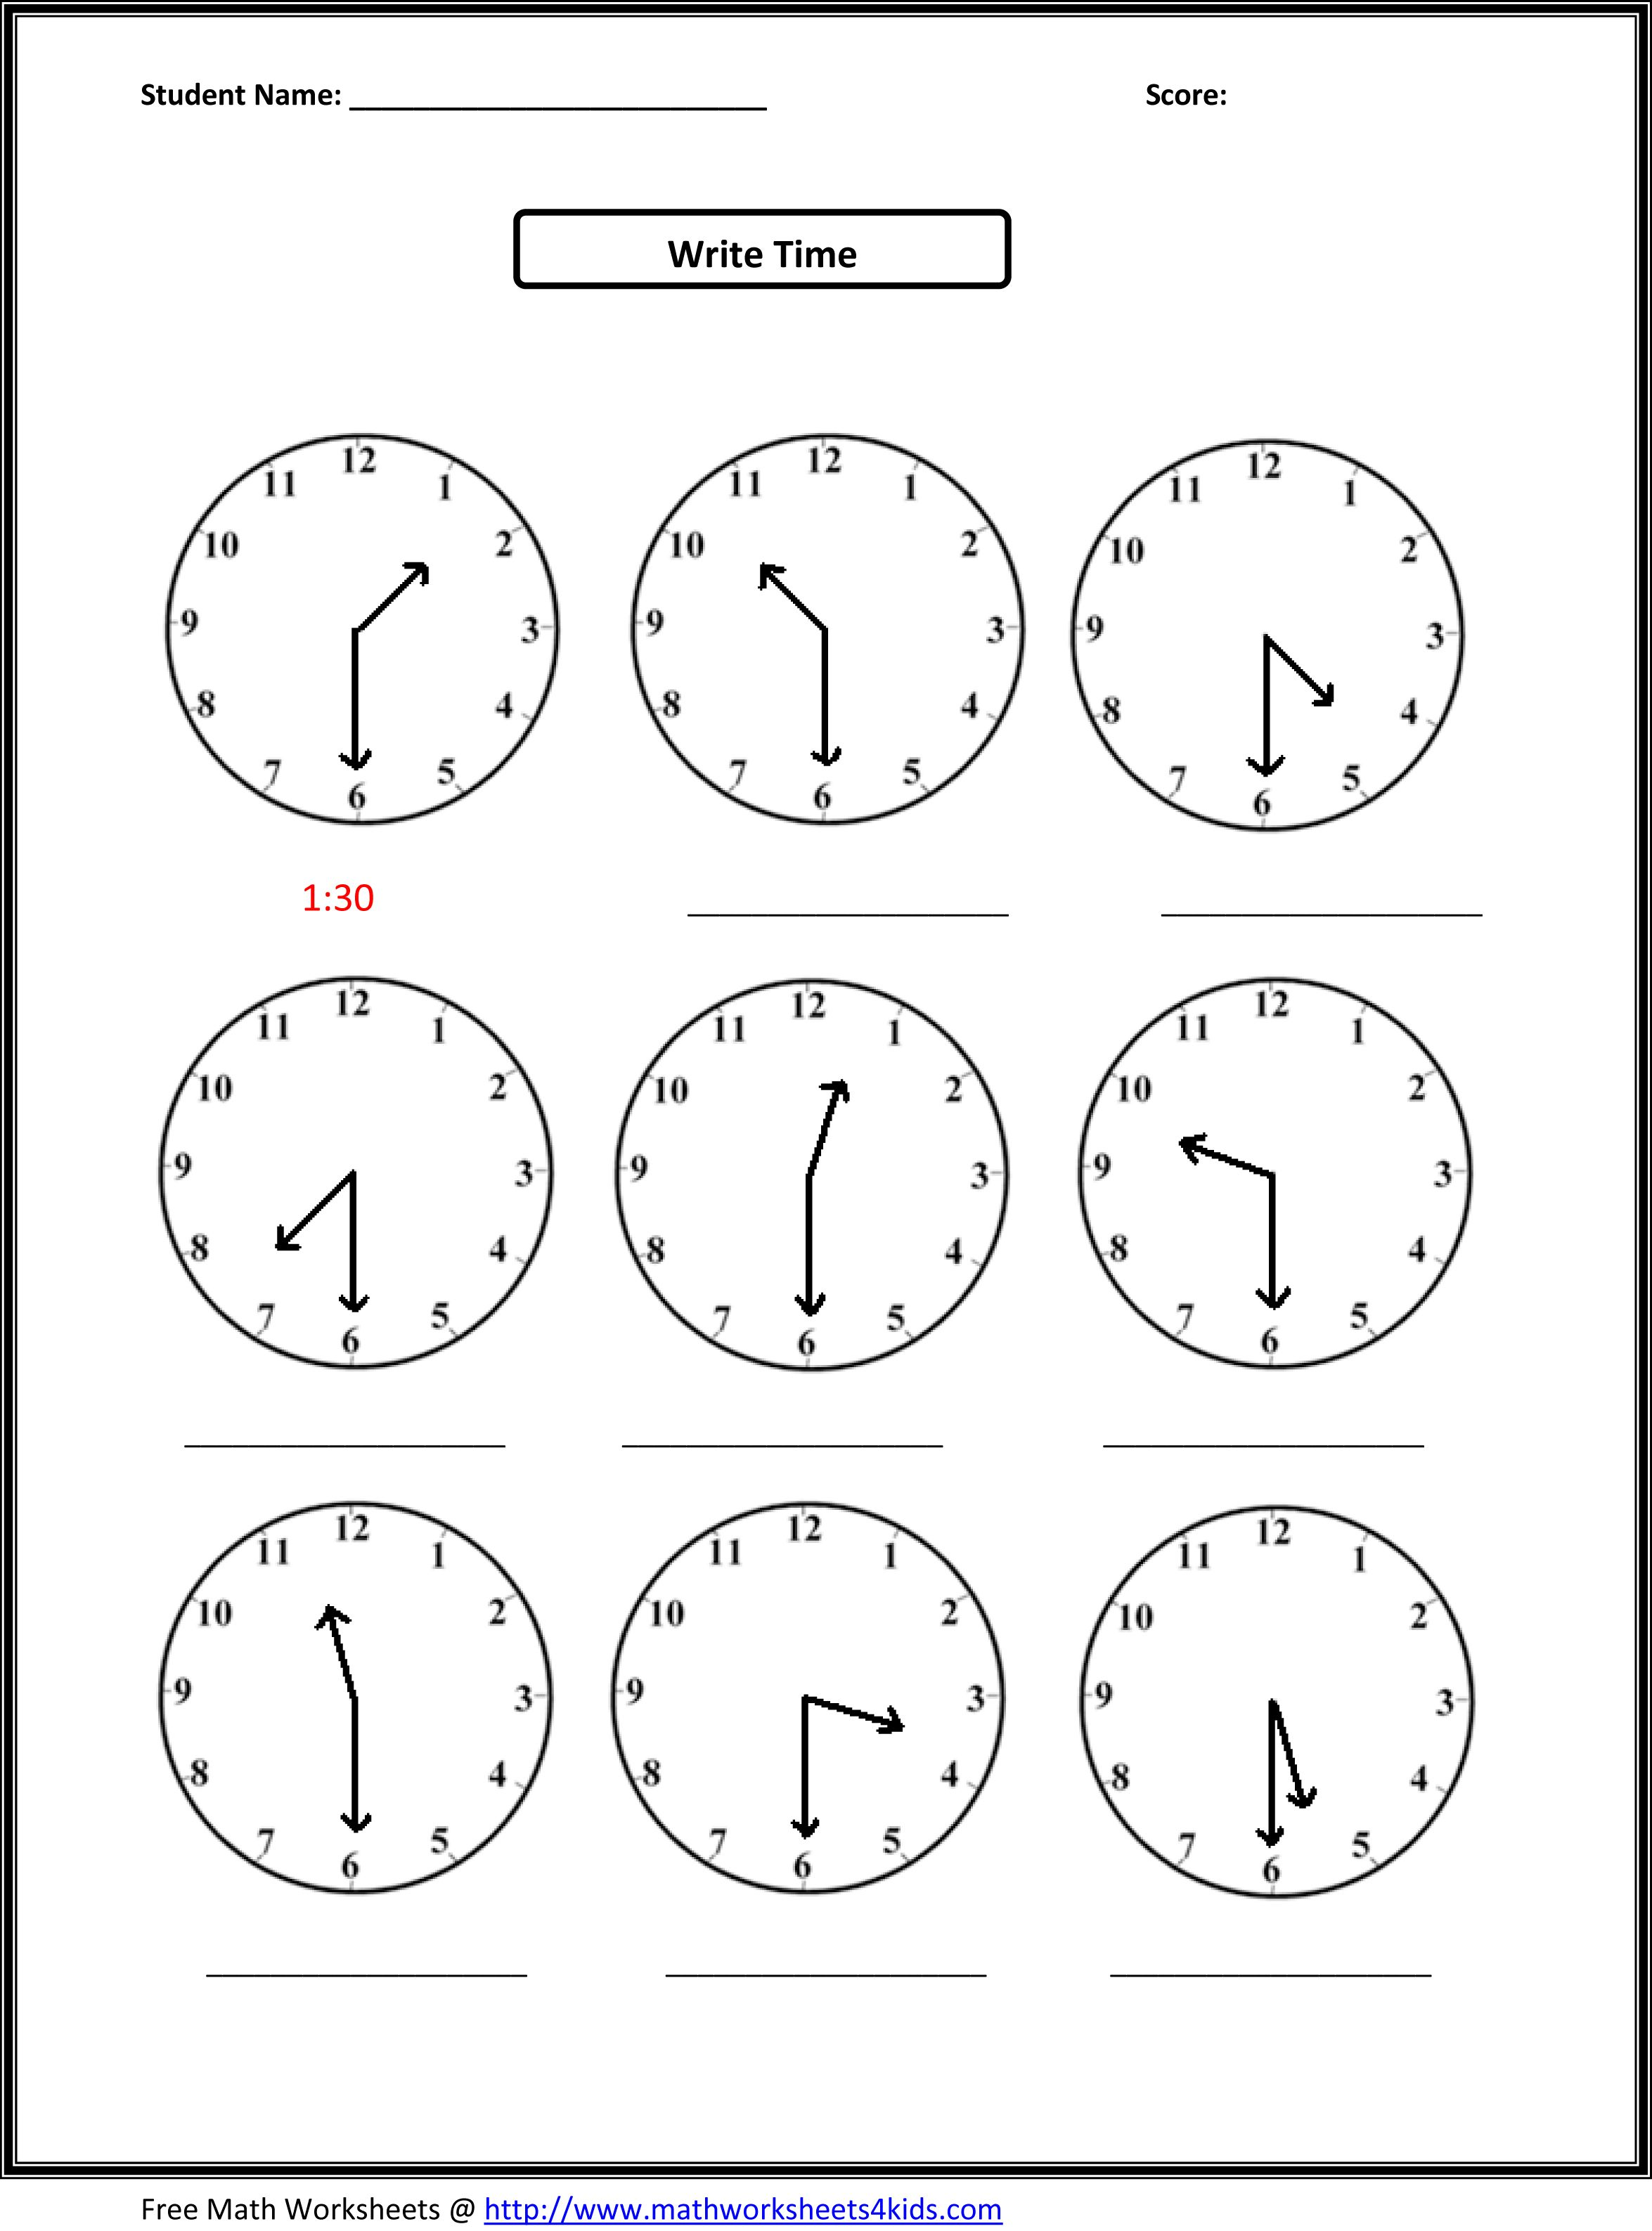 Weirdmailus  Scenic Worksheet On Time For Grade   Reocurent With Magnificent Free Printable Telling Time Worksheets Nd Grade  Reocurent With Agreeable Noun Clauses Worksheets Also Simple Algebraic Equations Worksheet In Addition Naming Organic Molecules Worksheet And Character Education Worksheets For Middle School As Well As Esl Worksheets For Elementary Students Additionally Reading A Calendar Worksheet From Reocurentcom With Weirdmailus  Magnificent Worksheet On Time For Grade   Reocurent With Agreeable Free Printable Telling Time Worksheets Nd Grade  Reocurent And Scenic Noun Clauses Worksheets Also Simple Algebraic Equations Worksheet In Addition Naming Organic Molecules Worksheet From Reocurentcom